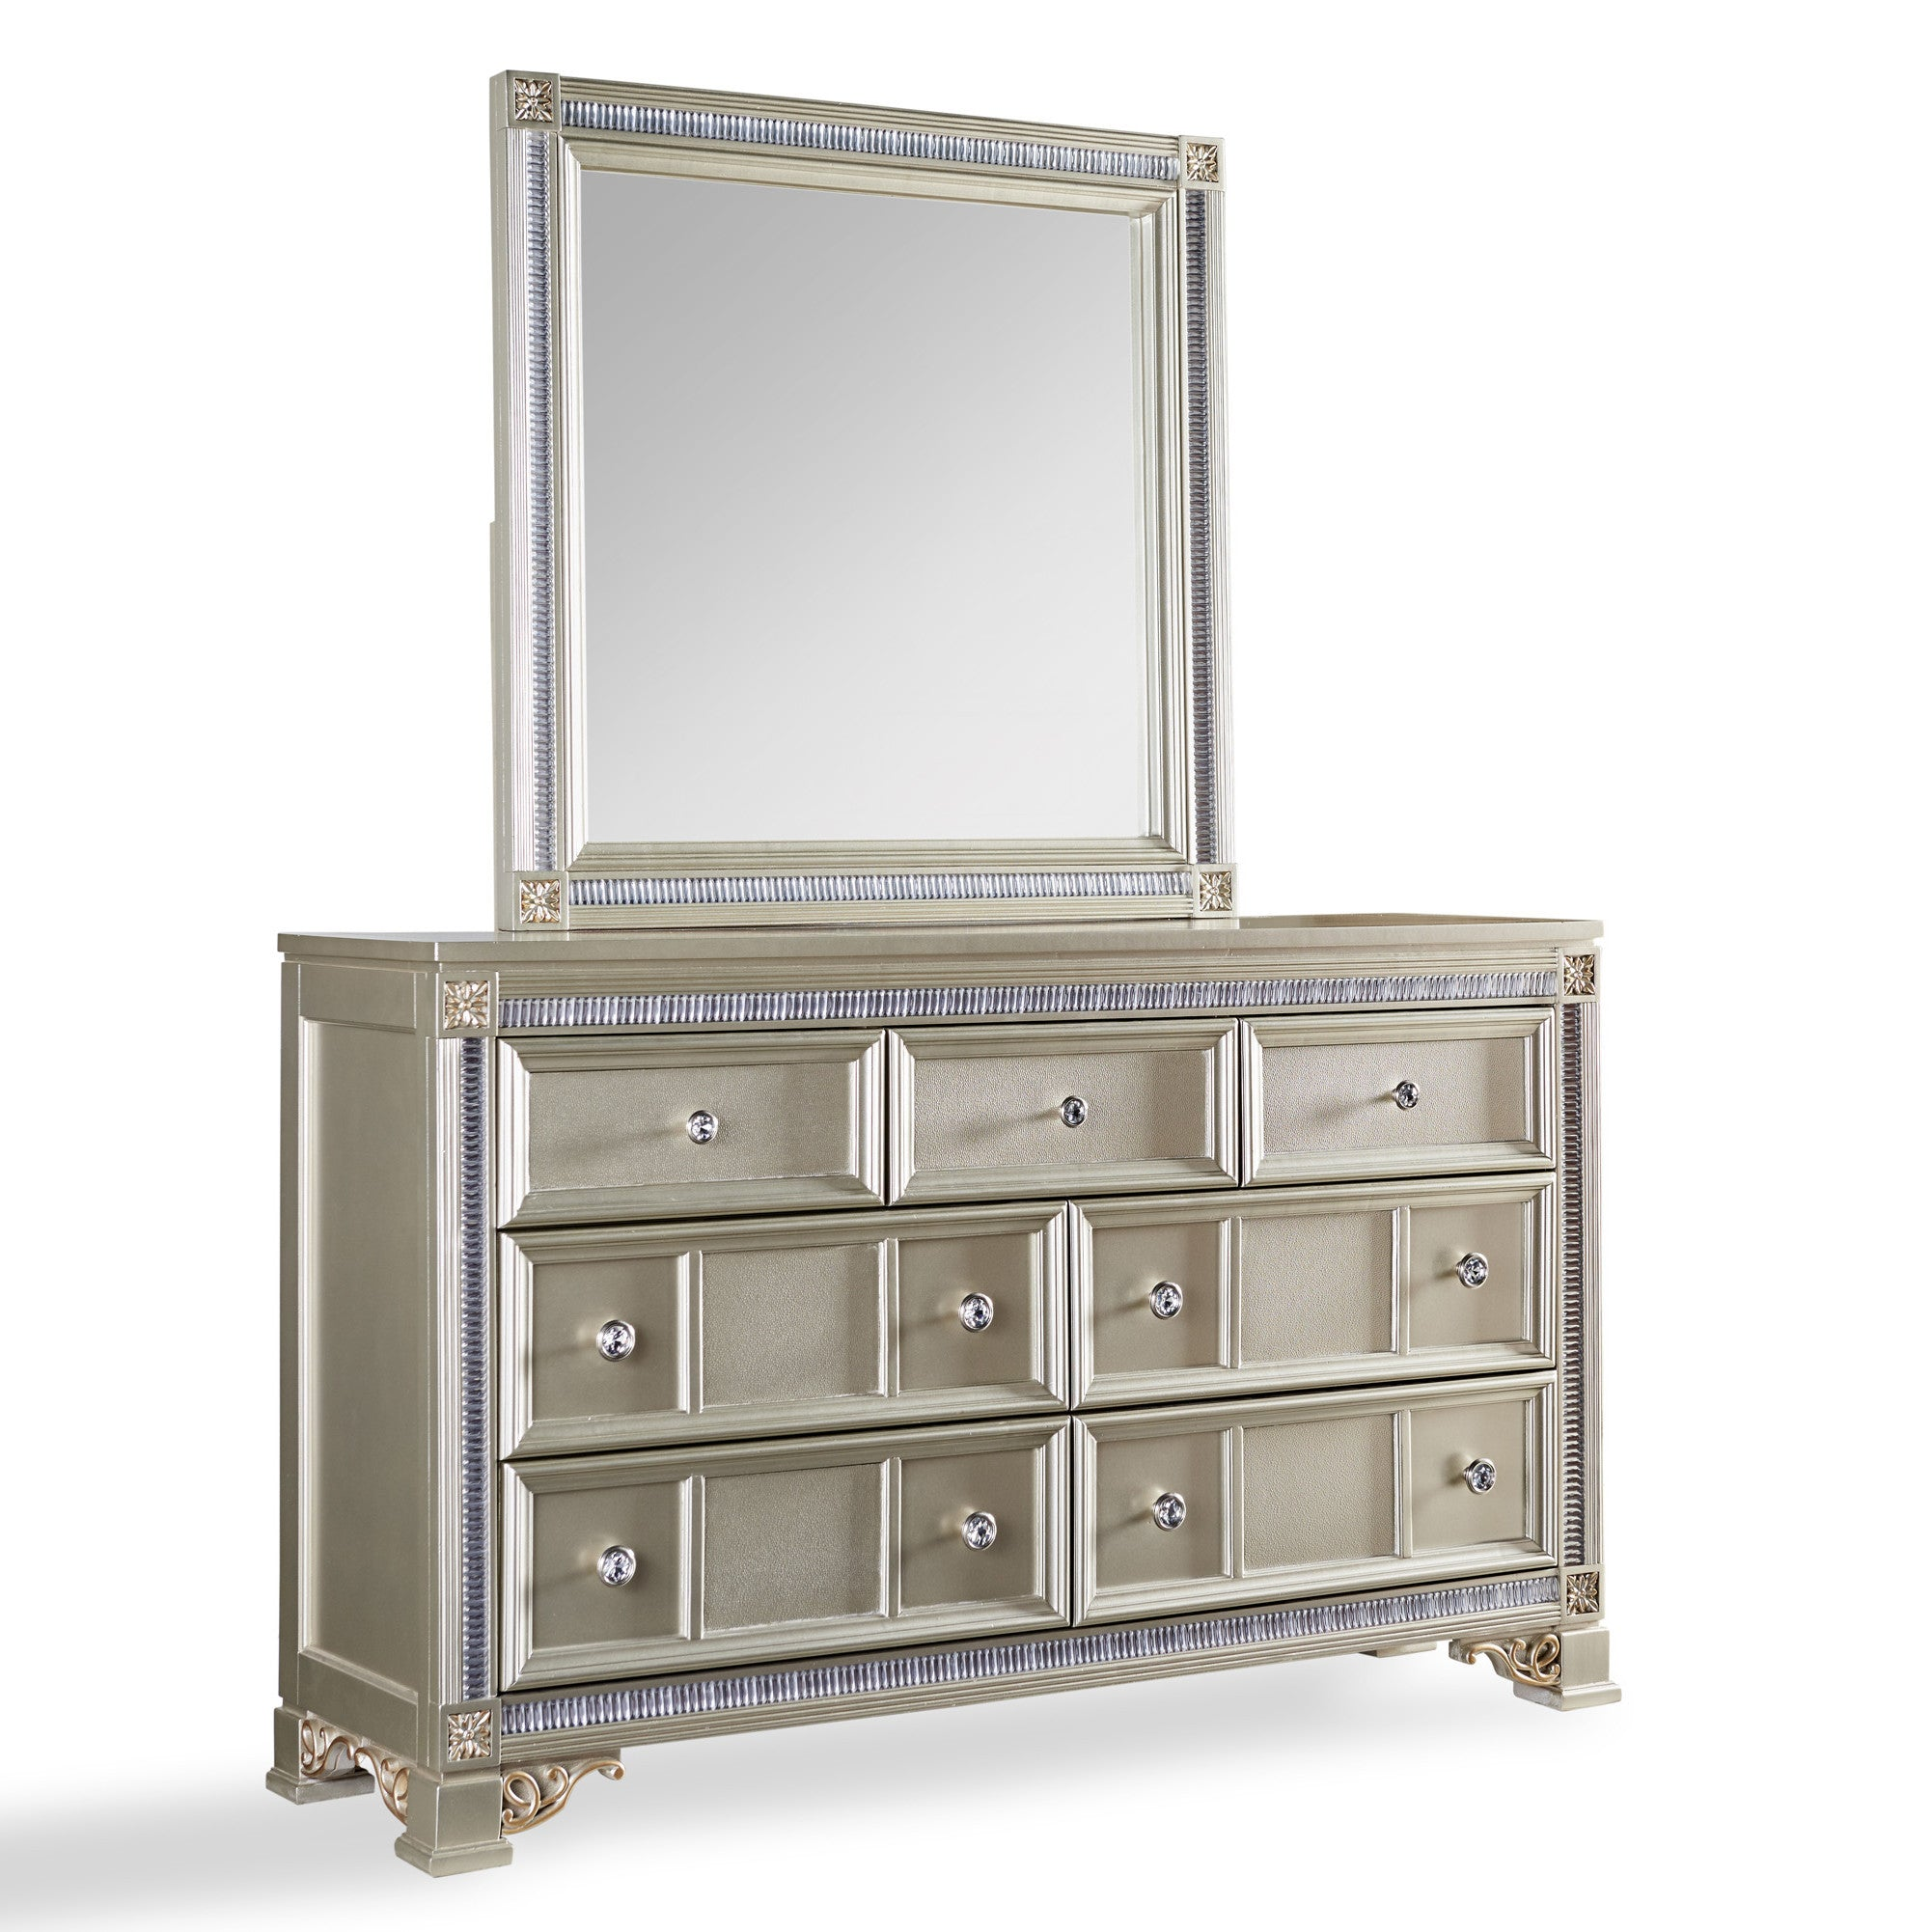 cabinet extraordinary mirrored stimulating on wonderful antique mirror legs cheap with sale furniture chest of mirr dresser drawers images fascinating nightstand accent black